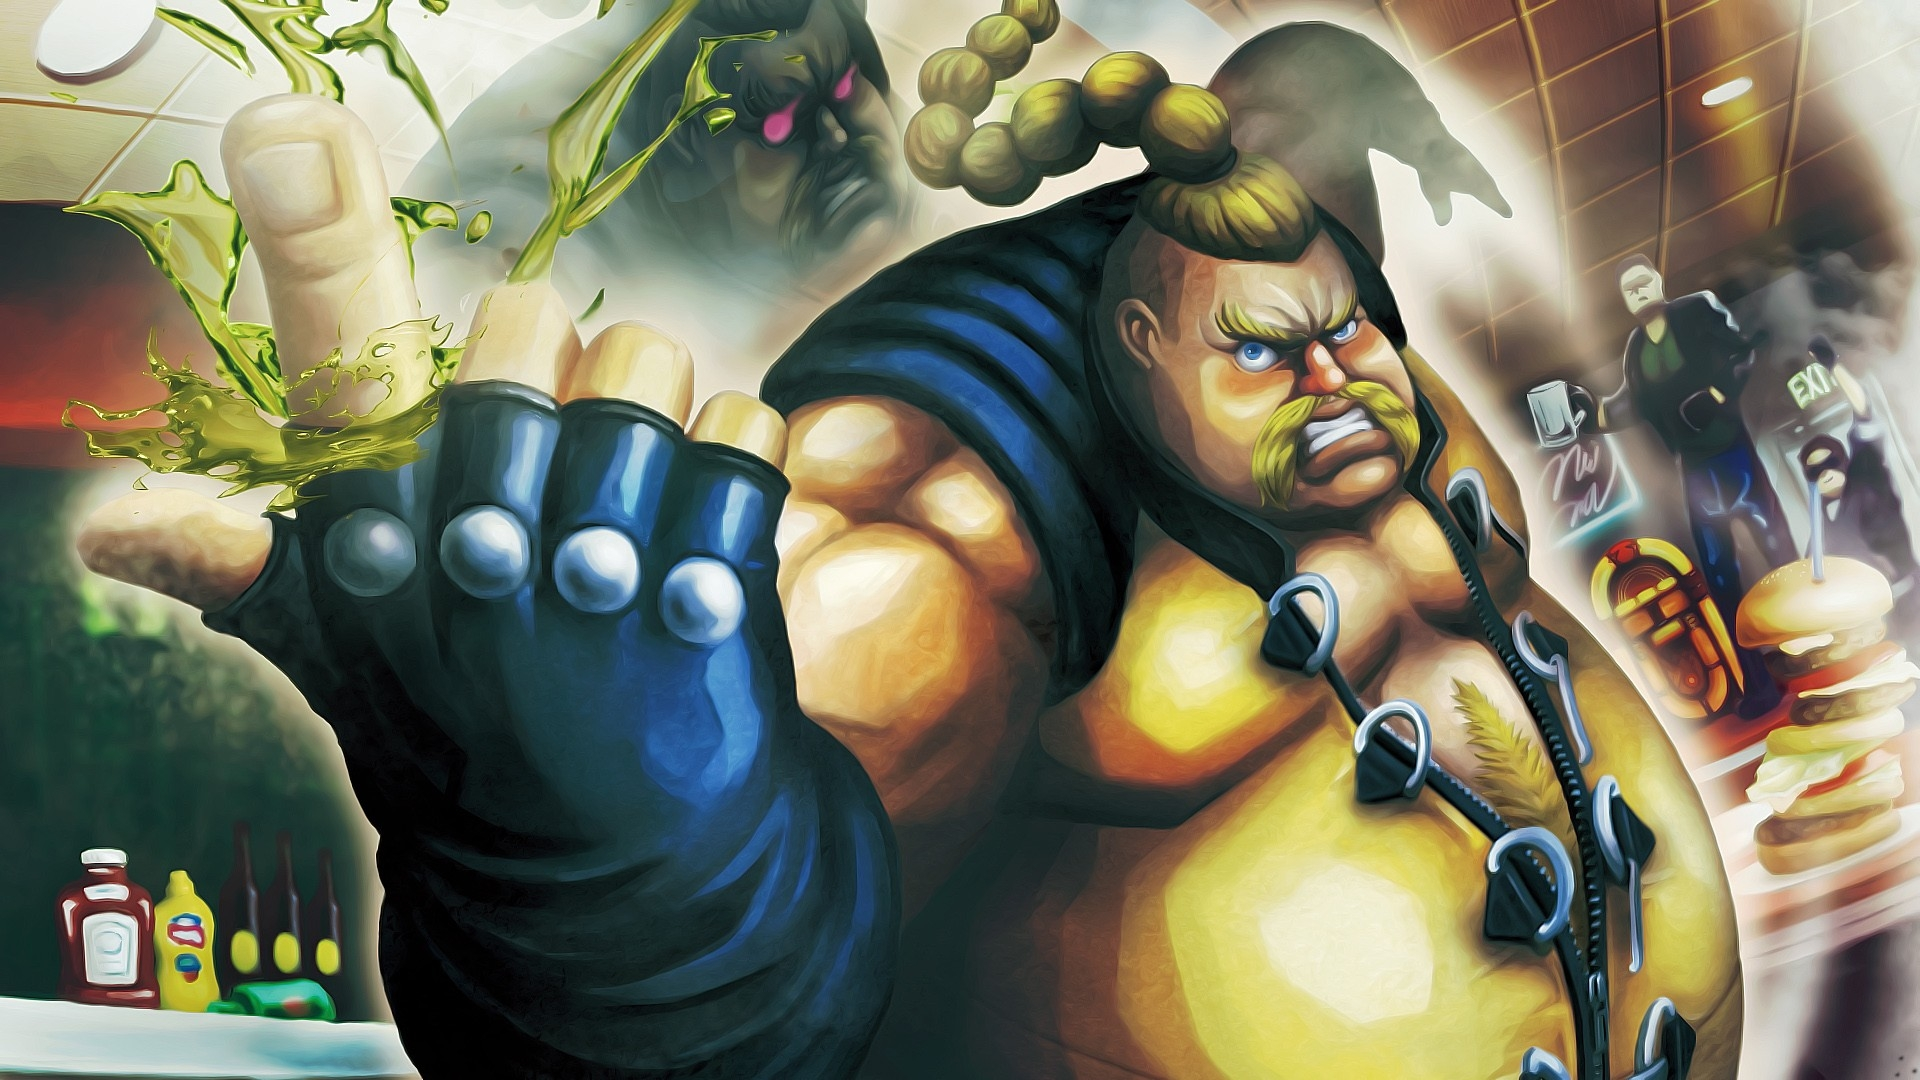 840x1160 Street Fighter X Tekken Rufus Fat 840x1160 Resolution Wallpaper Hd Games 4k Wallpapers Images Photos And Background